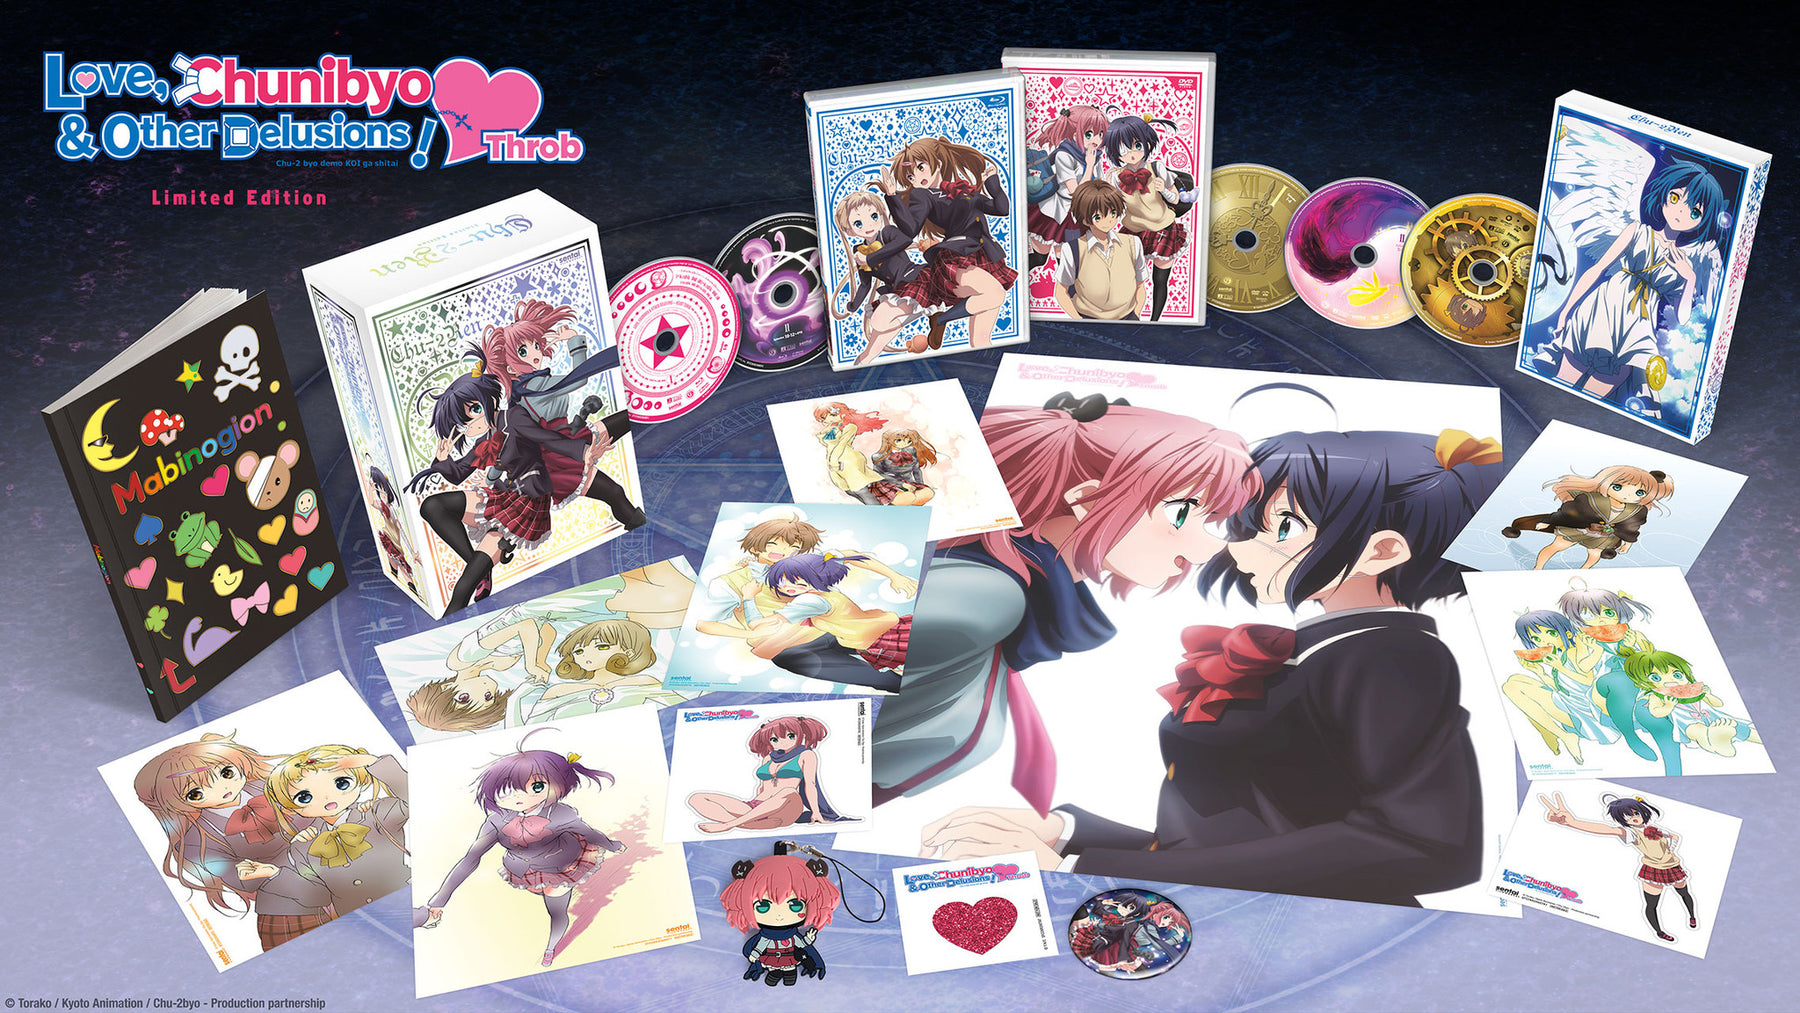 Love, Chunibyo & Other Delusions! -Heart Throb- Premium Box Set